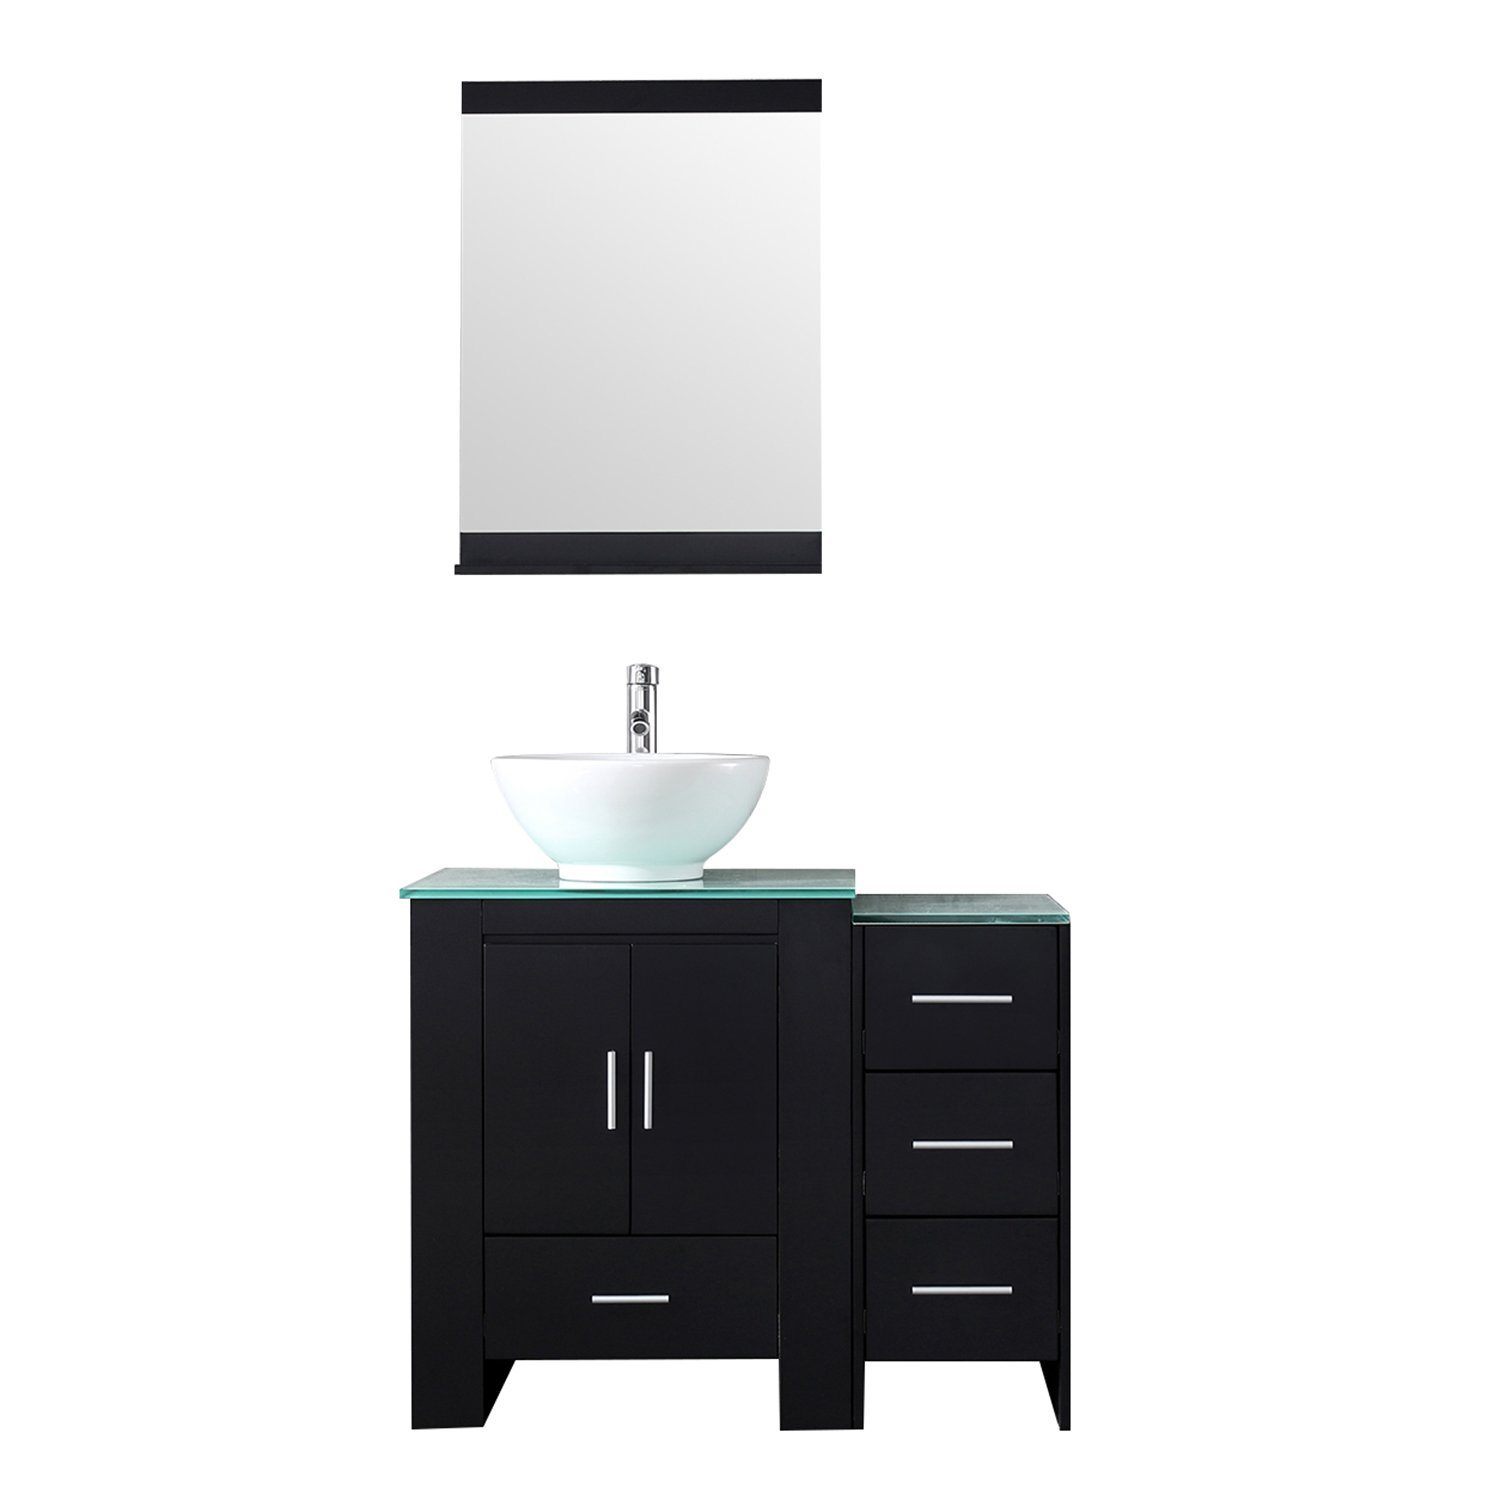 Bathjoy 36 Inch Bathroom Wood Vanity Cabinet Top Round Ceramic